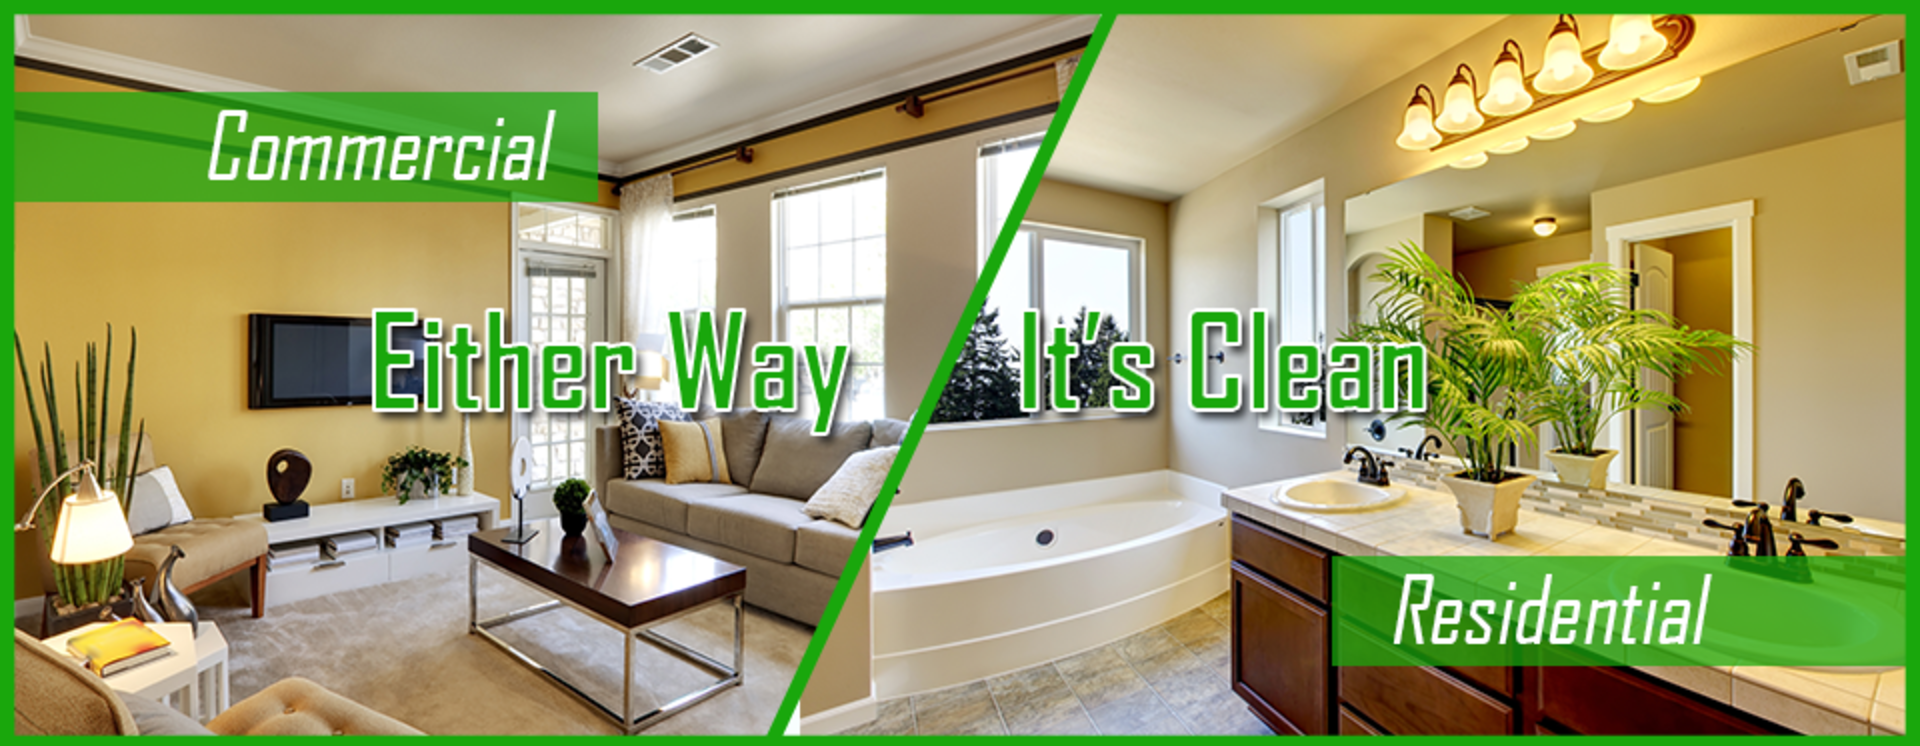 Residential and Commercial Cleaning Services in Kansas City